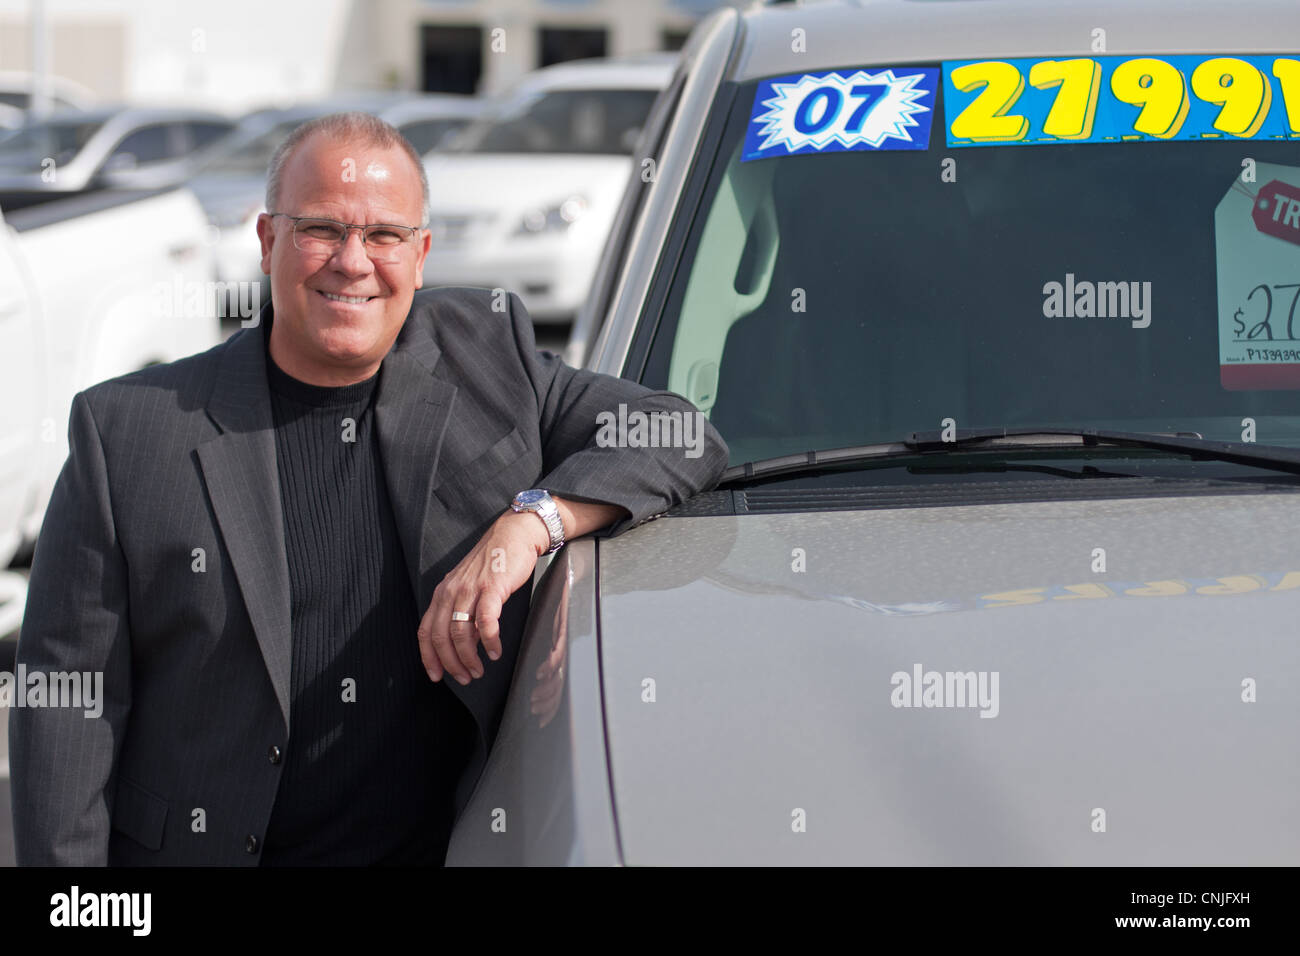 car salesman on lot with price sticker on car selling - Stock Image